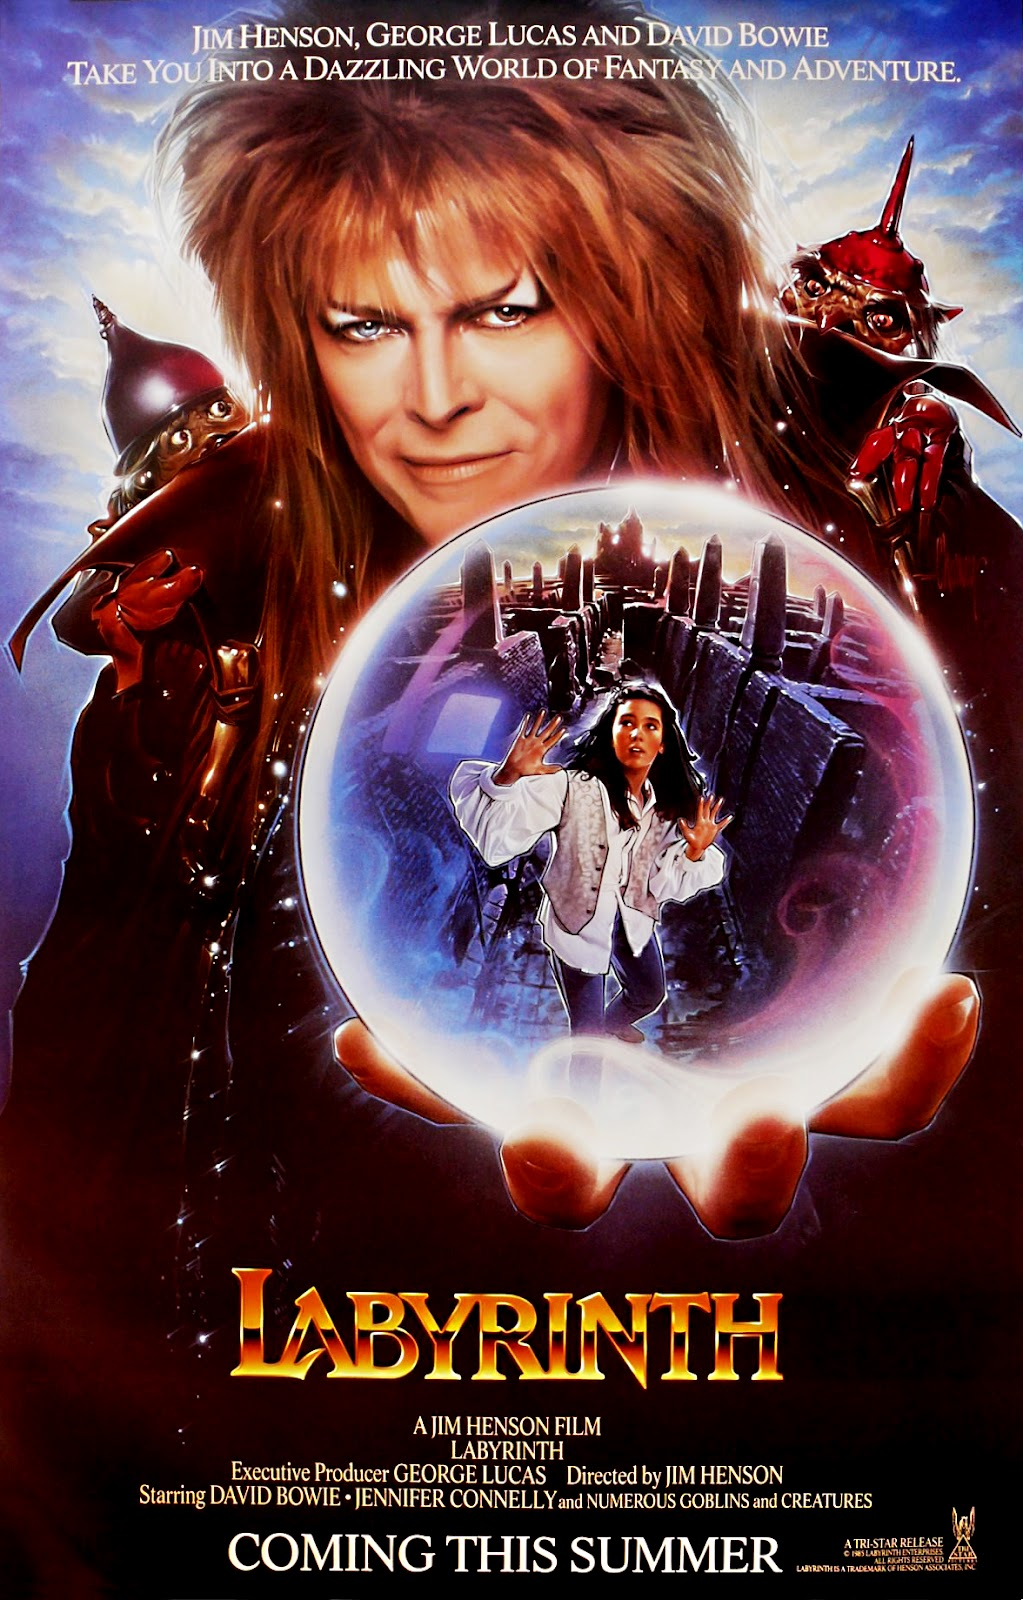 The Geeky Nerfherder: Movie Poster Art: Labyrinth (1986) Labyrinth 1986